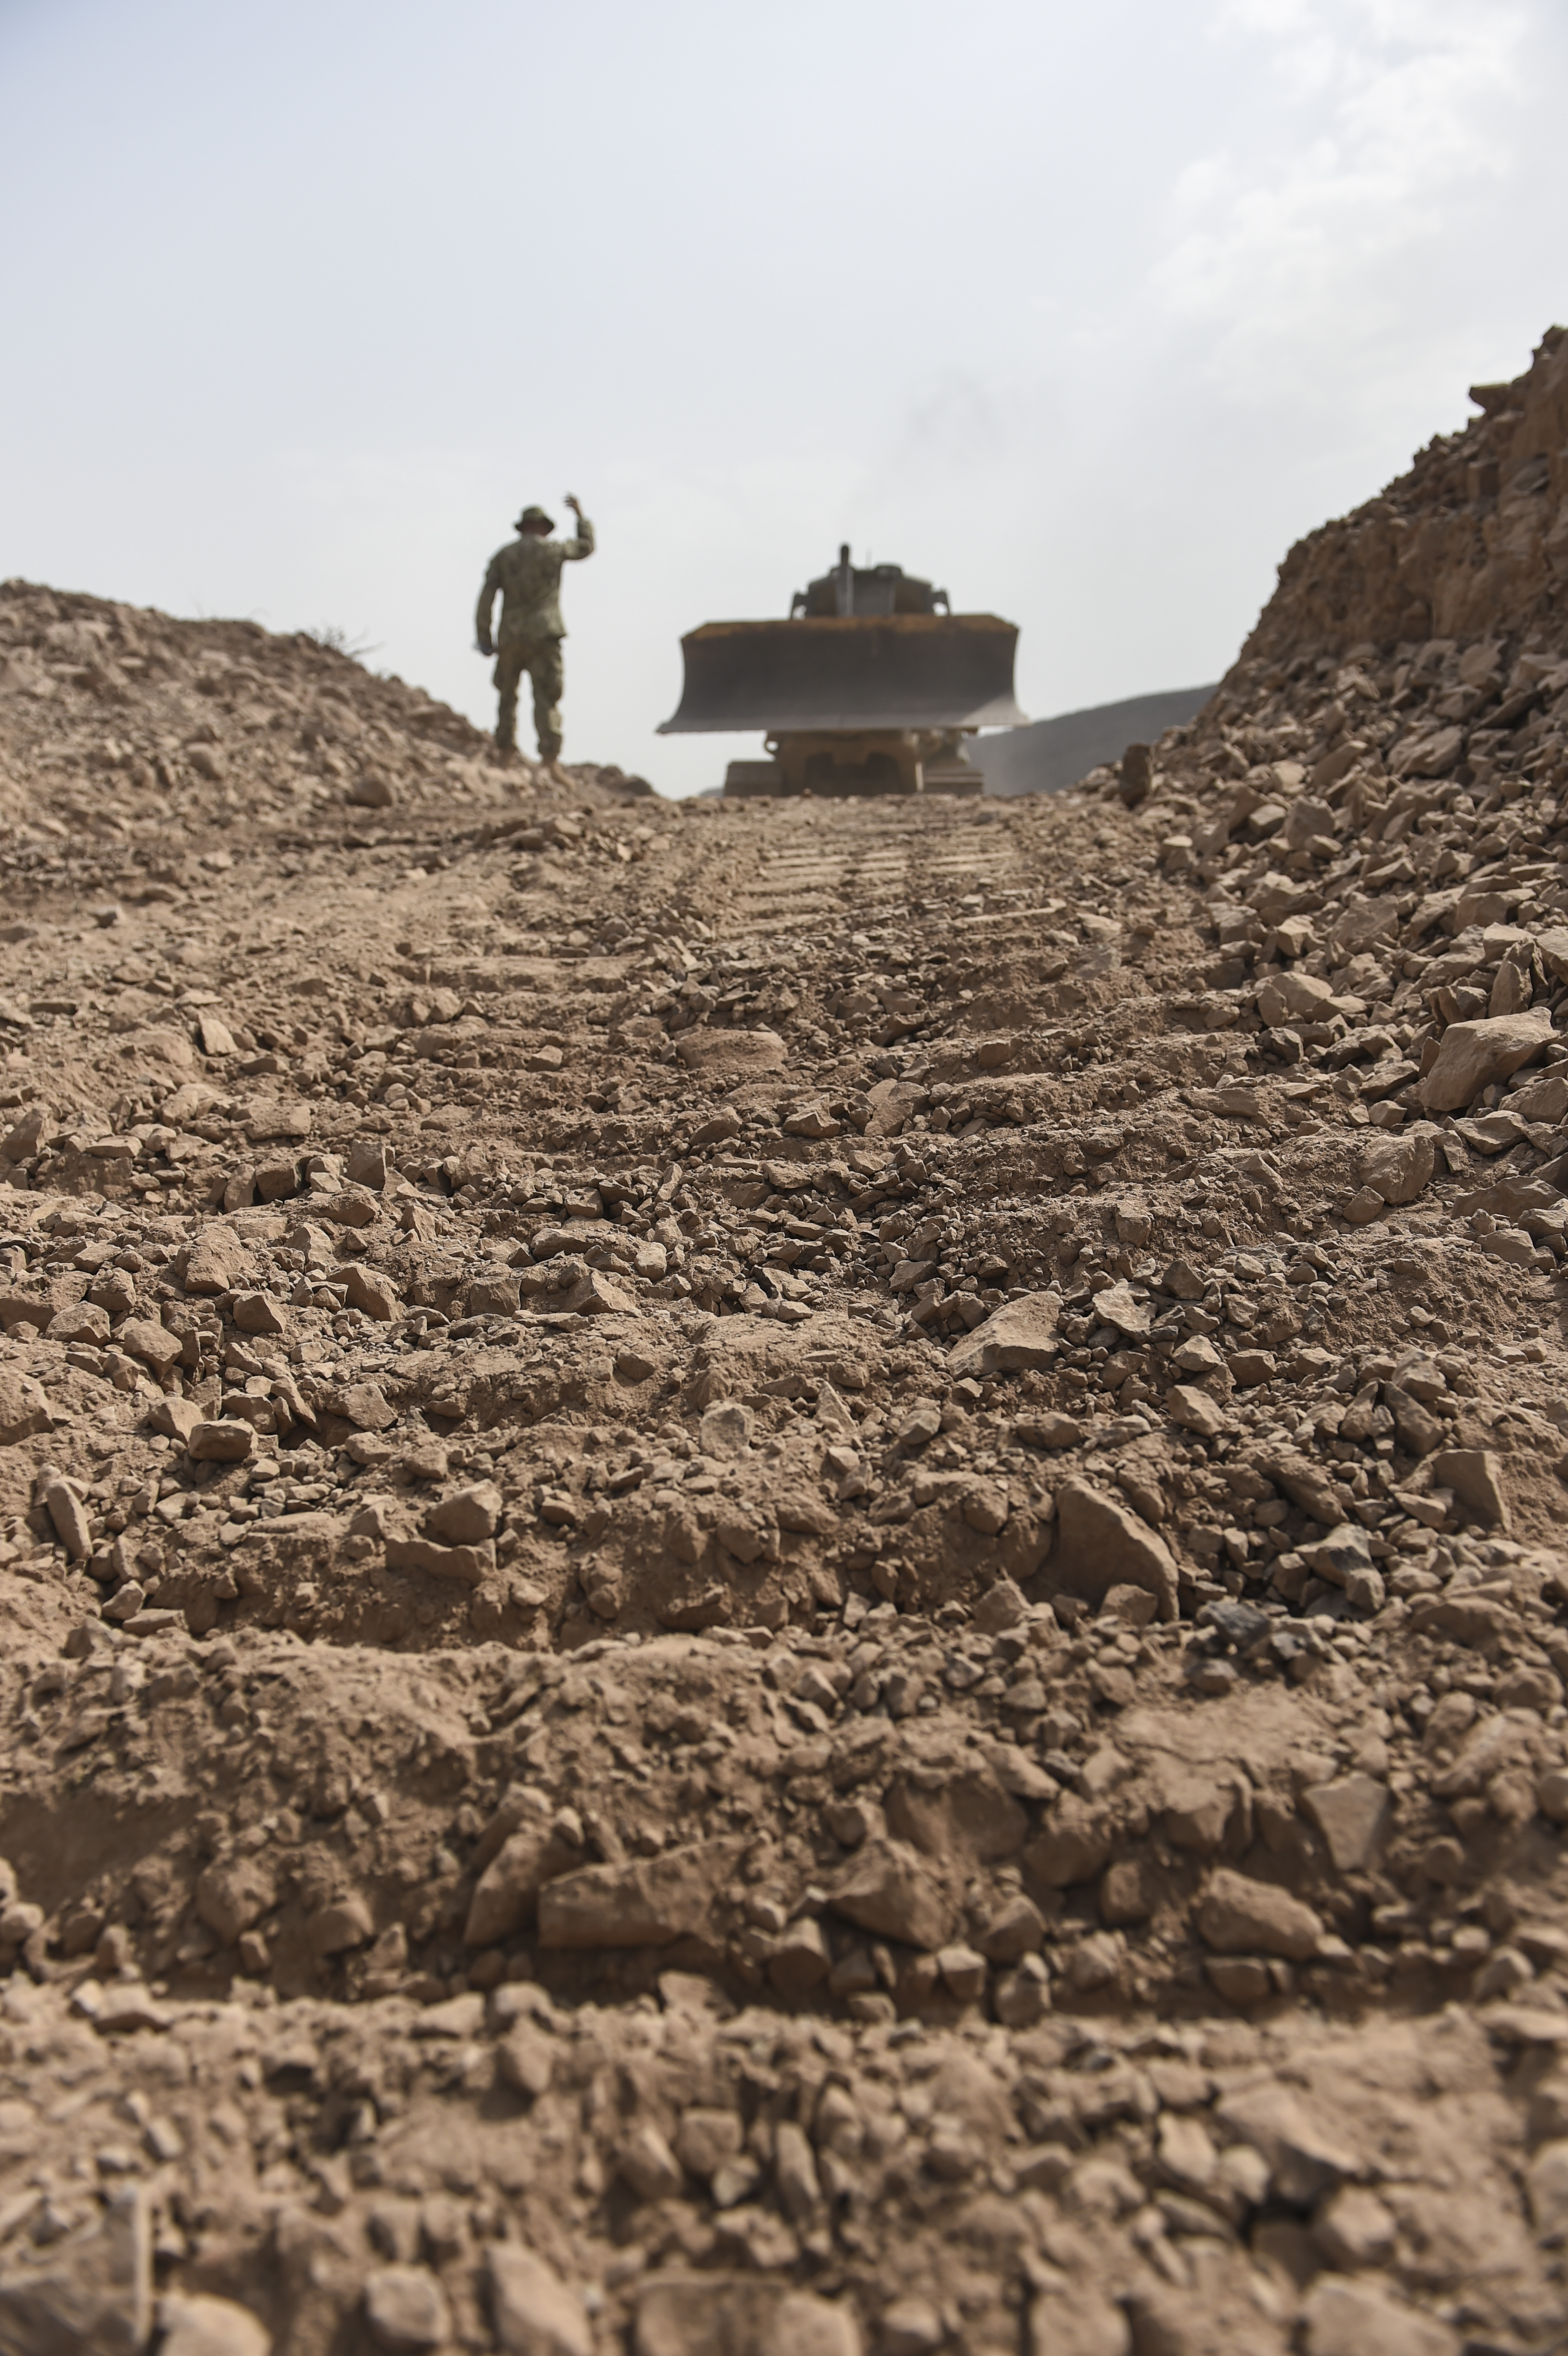 An equipment operator with the U.S. Naval Mobile Construction Battalion One directs another operator to proceed forward with a bulldozer at a range near Arta, Djibouti, July 27, 2017. NMCB One supports Combined Joint Task Force-Horn of Africa through the completion various construction projects throughout East Africa that aid promoting stability in the region. (U.S. Air Force photo by Staff Sgt. Eboni Prince)